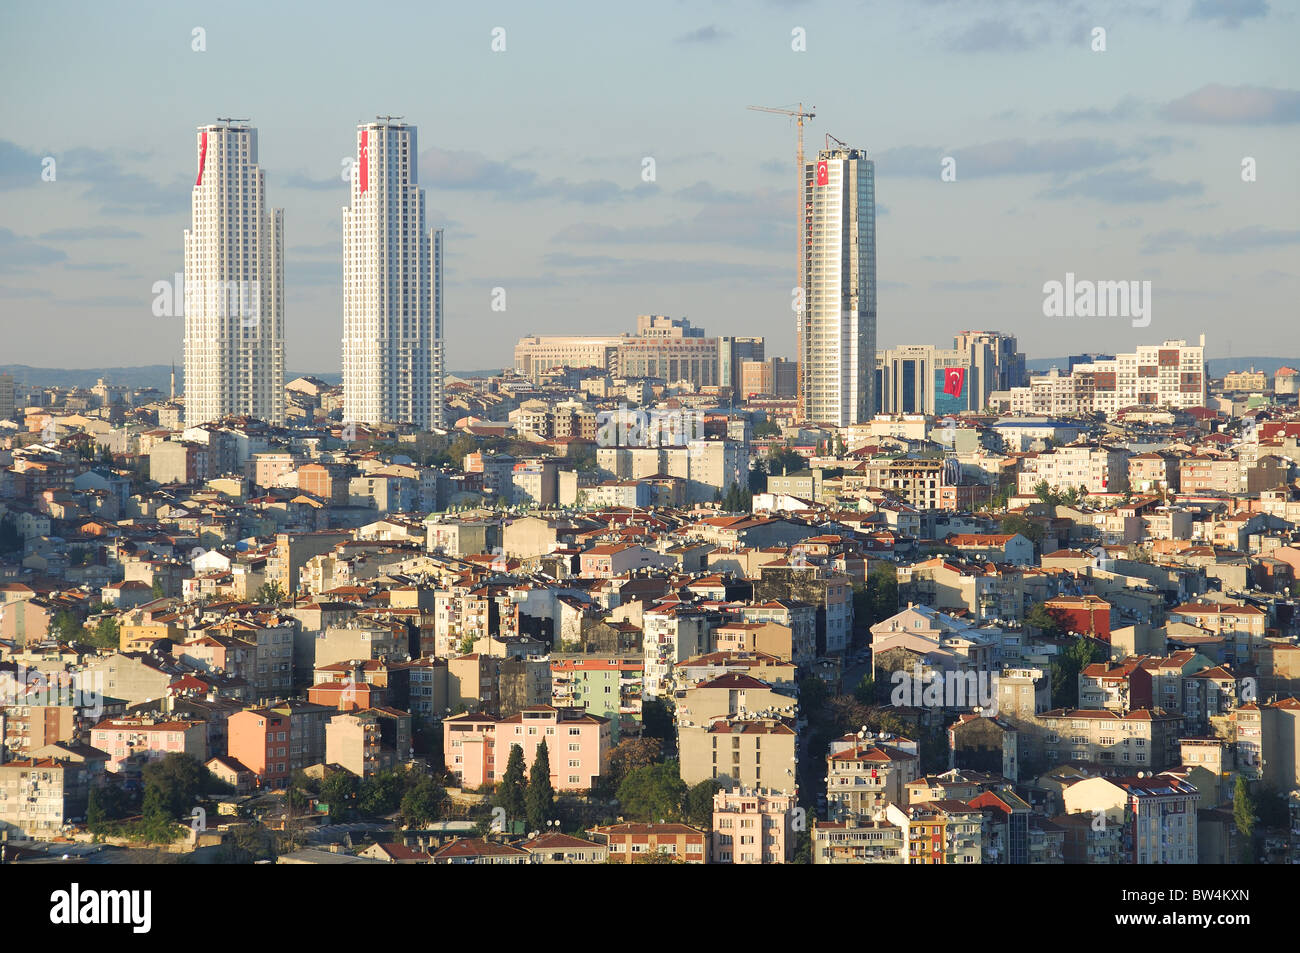 ISTANBUL, TURKEY. A view from Beyoglu towards modern skyscrapers in the Sisli district of the city. Autumn 2010. - Stock Image